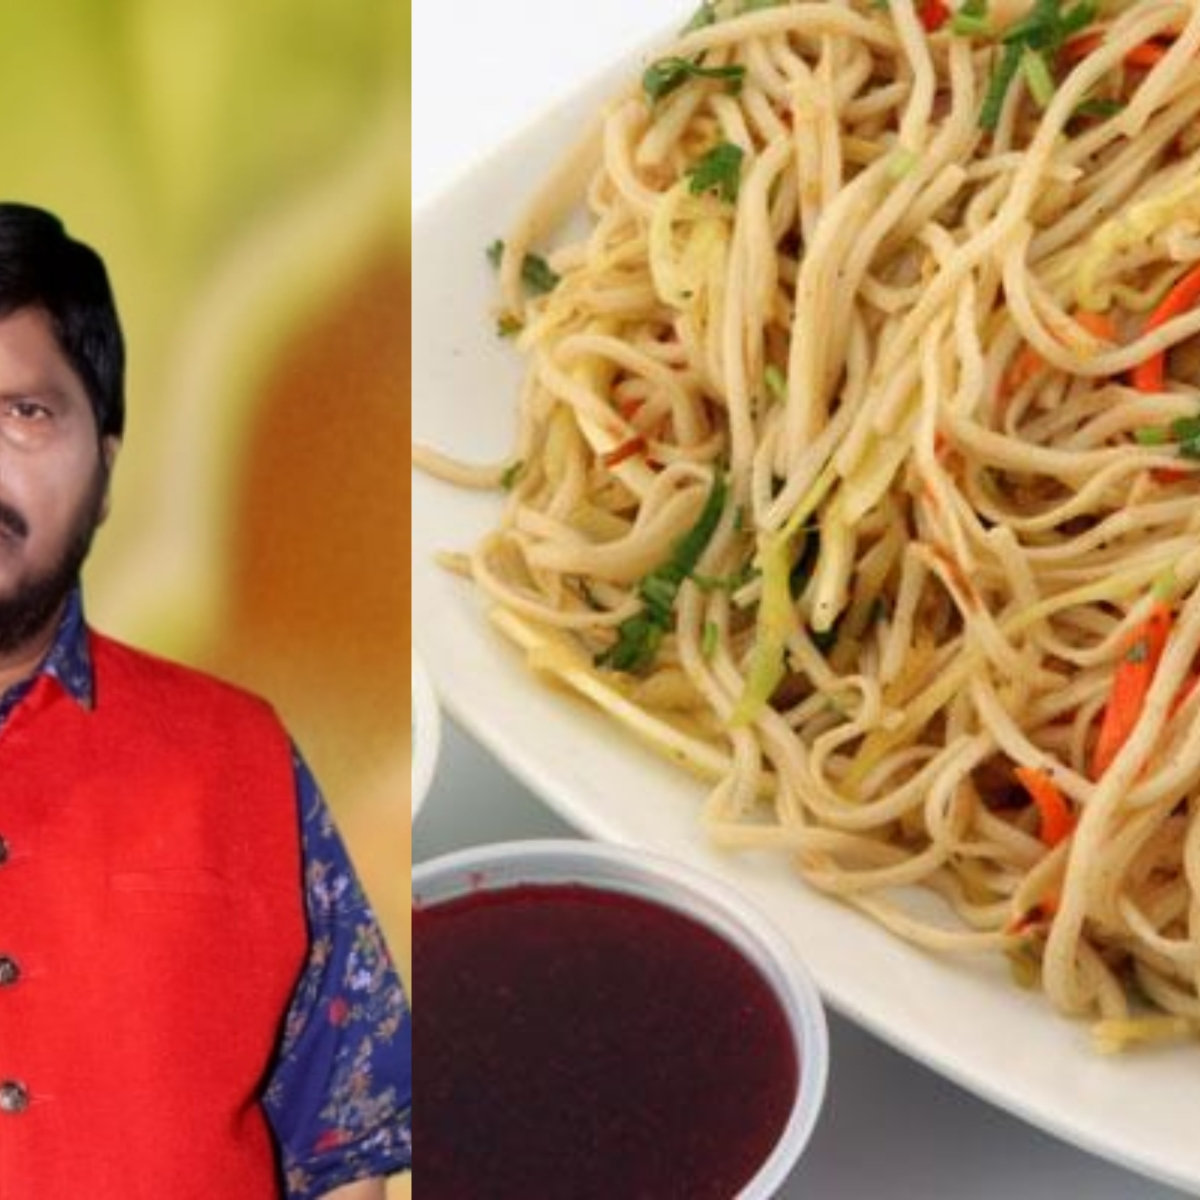 Ramdas Athawale's call for ban on Chinese food adds tadka to India-China rift